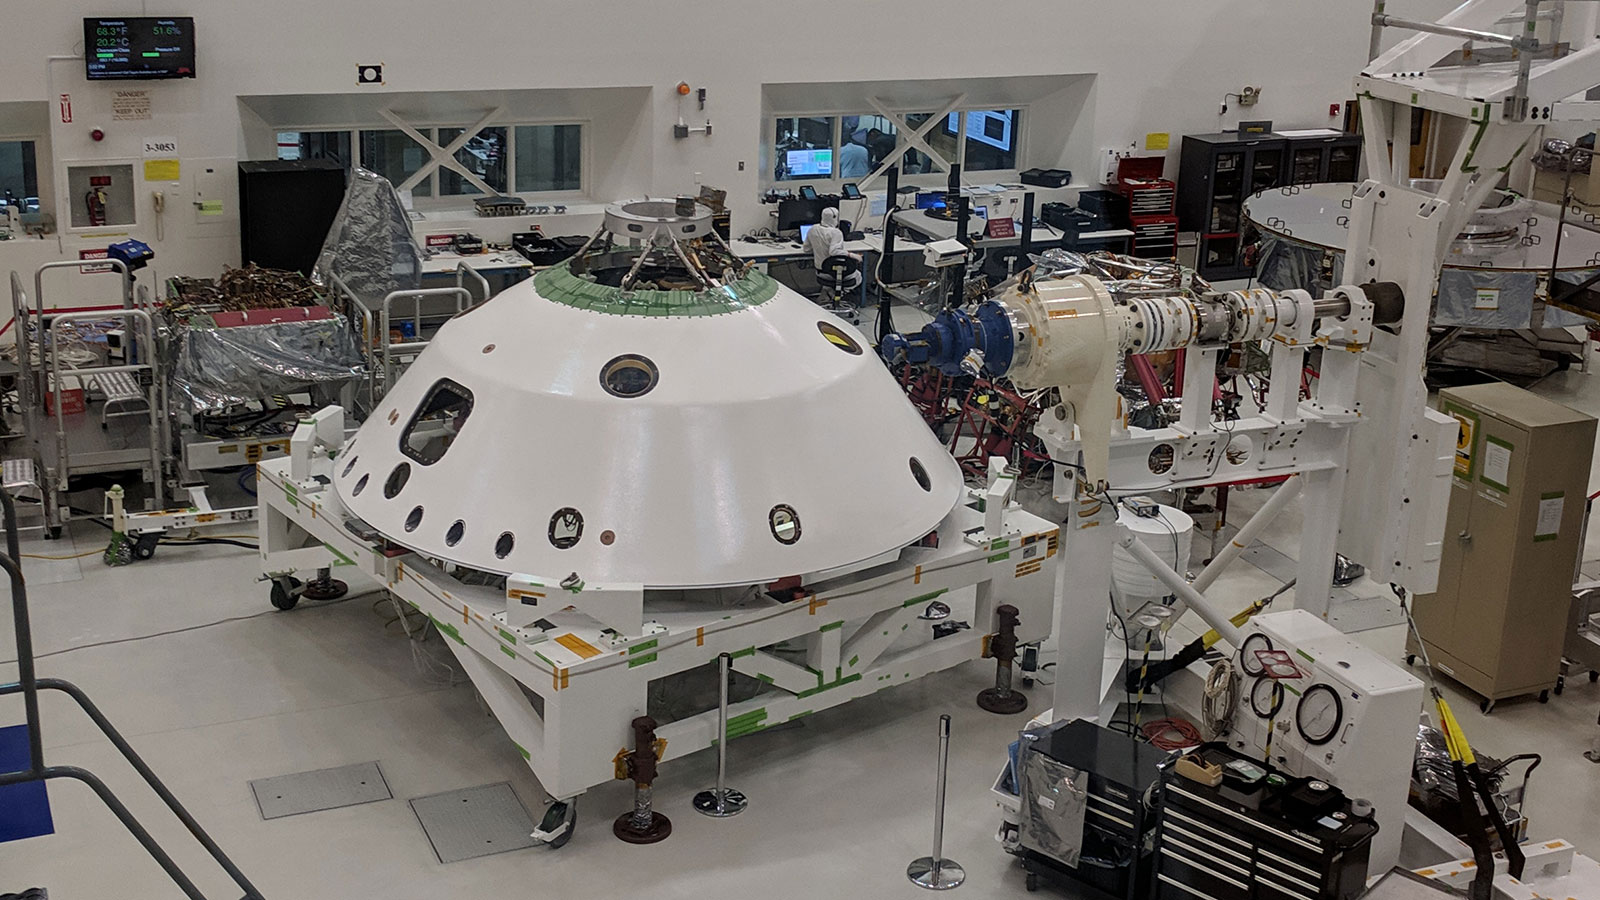 The backshell that will help protect the Mars 2020 rover during its descent into the Martian atmosphere visible in the foreground. A technician on the project monitors the progress of Systems Test 1.